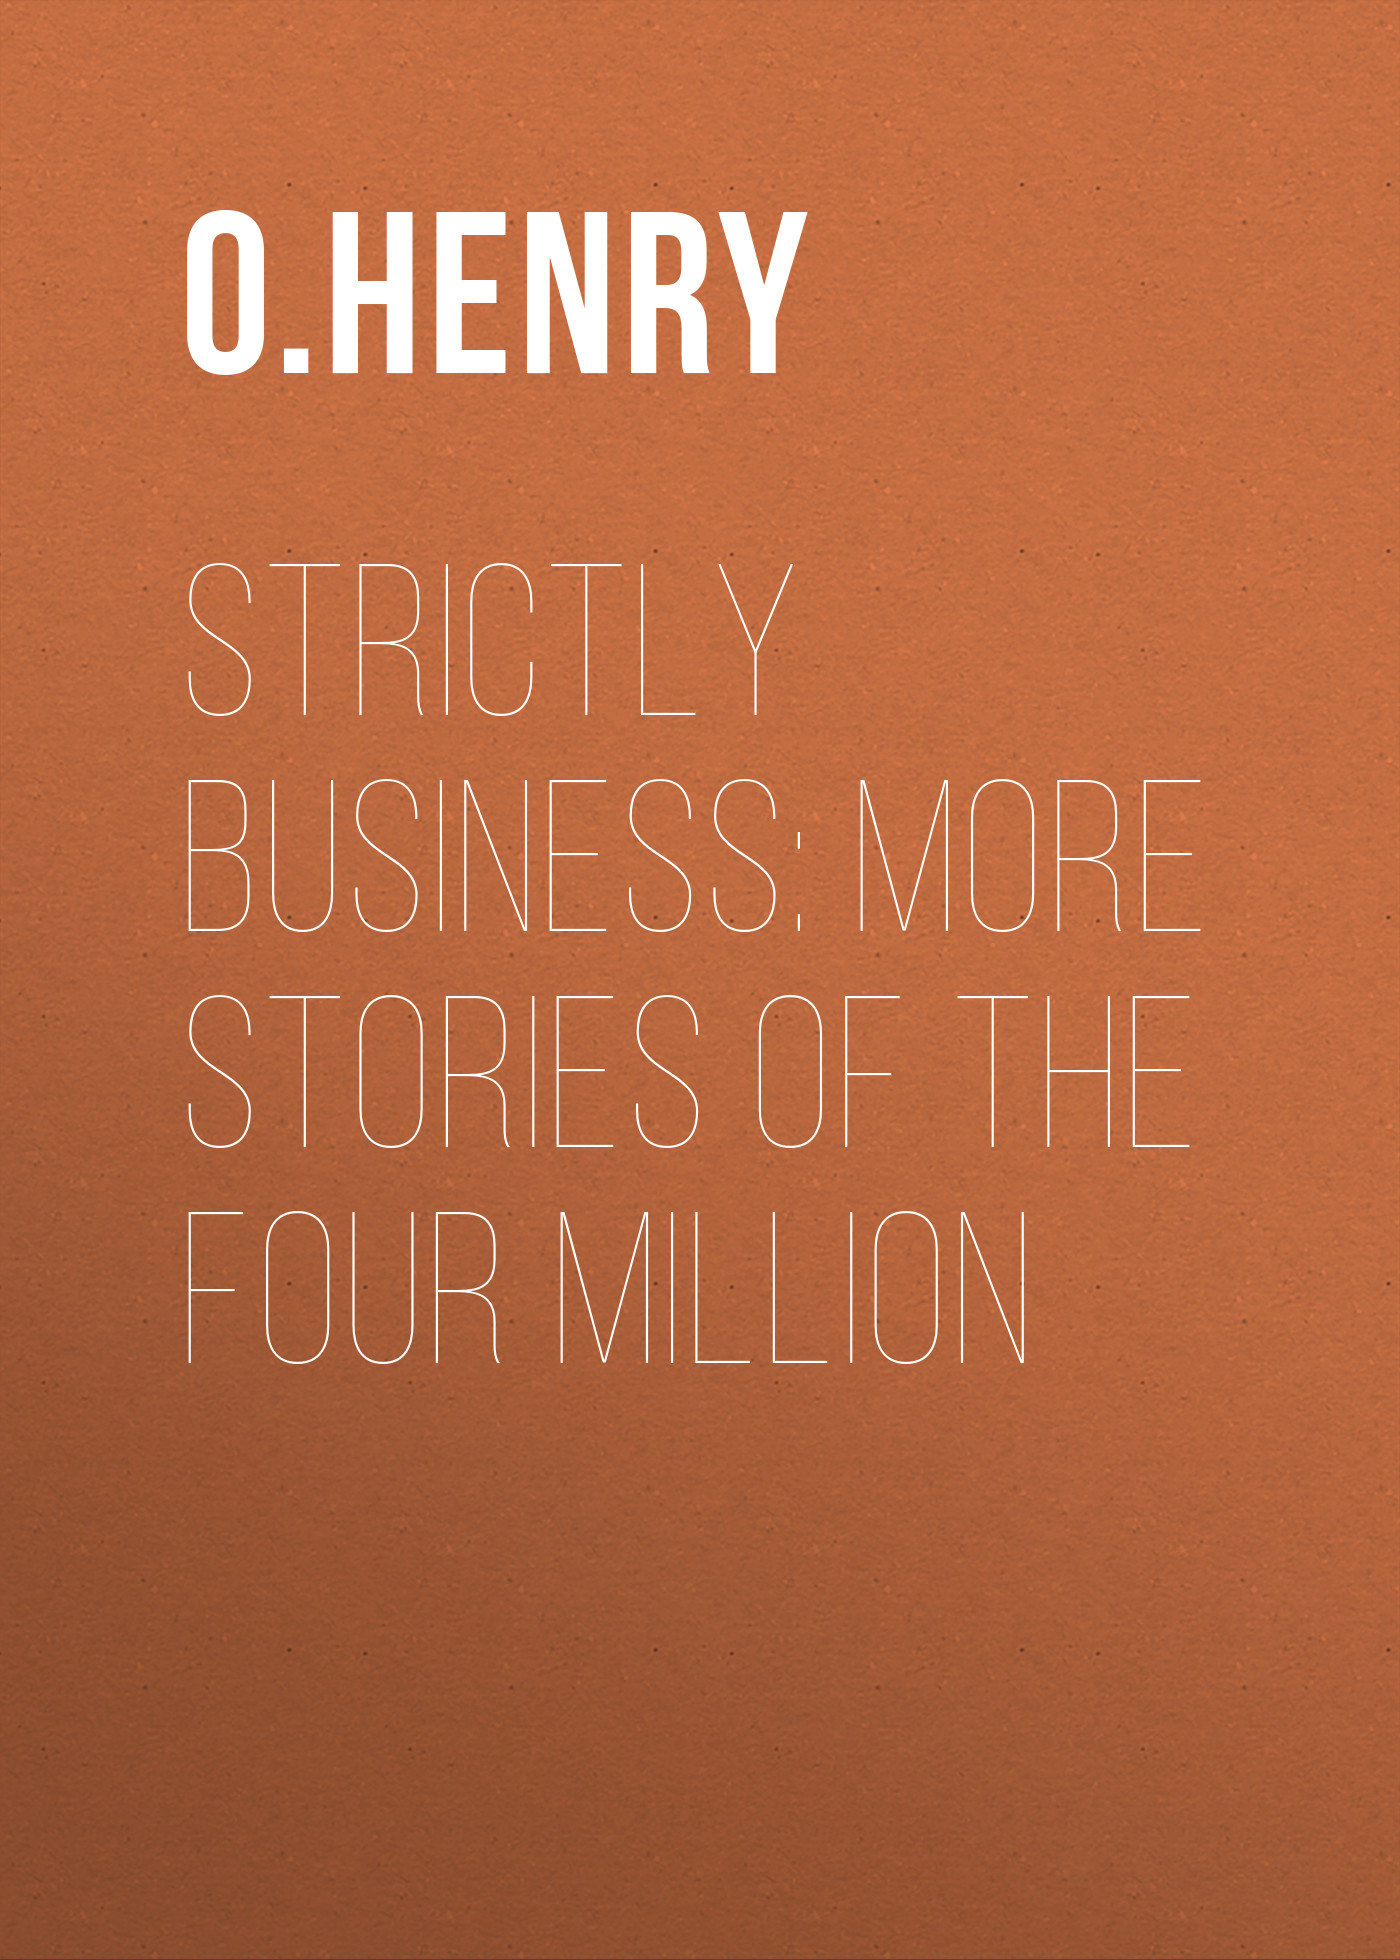 О. Генри Strictly Business: More Stories of the Four Million цена